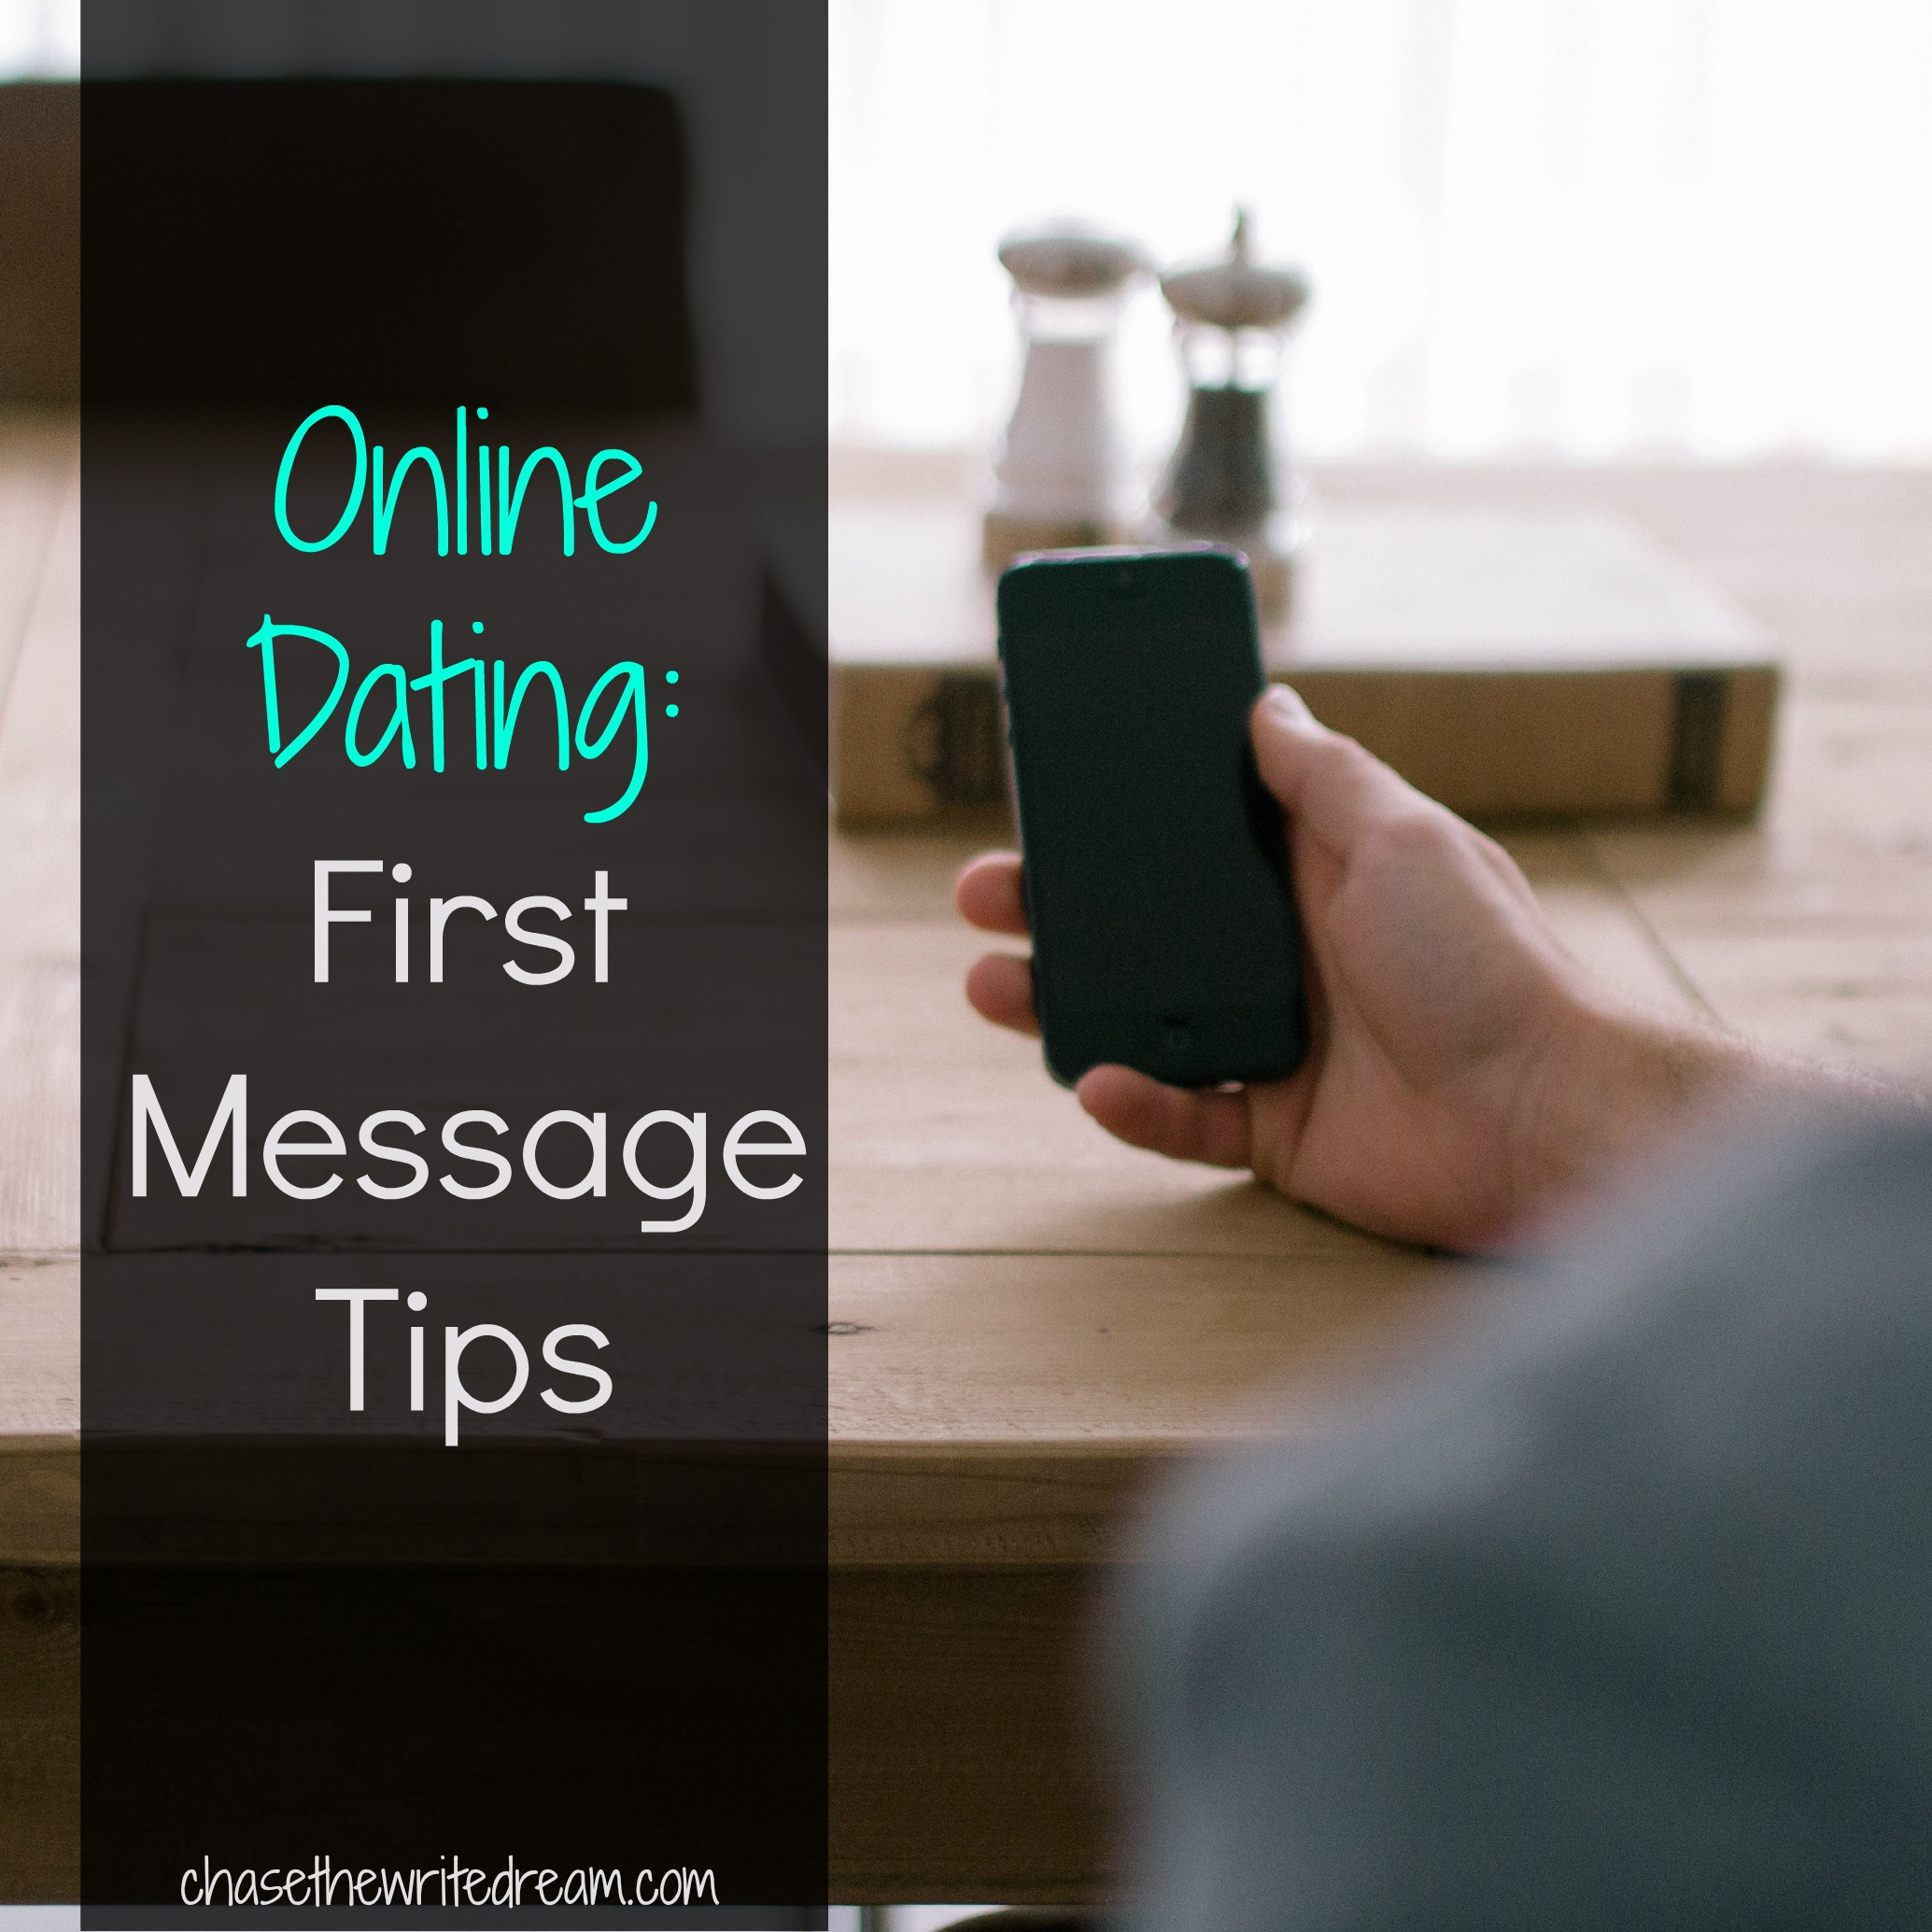 Online dating delayed messages